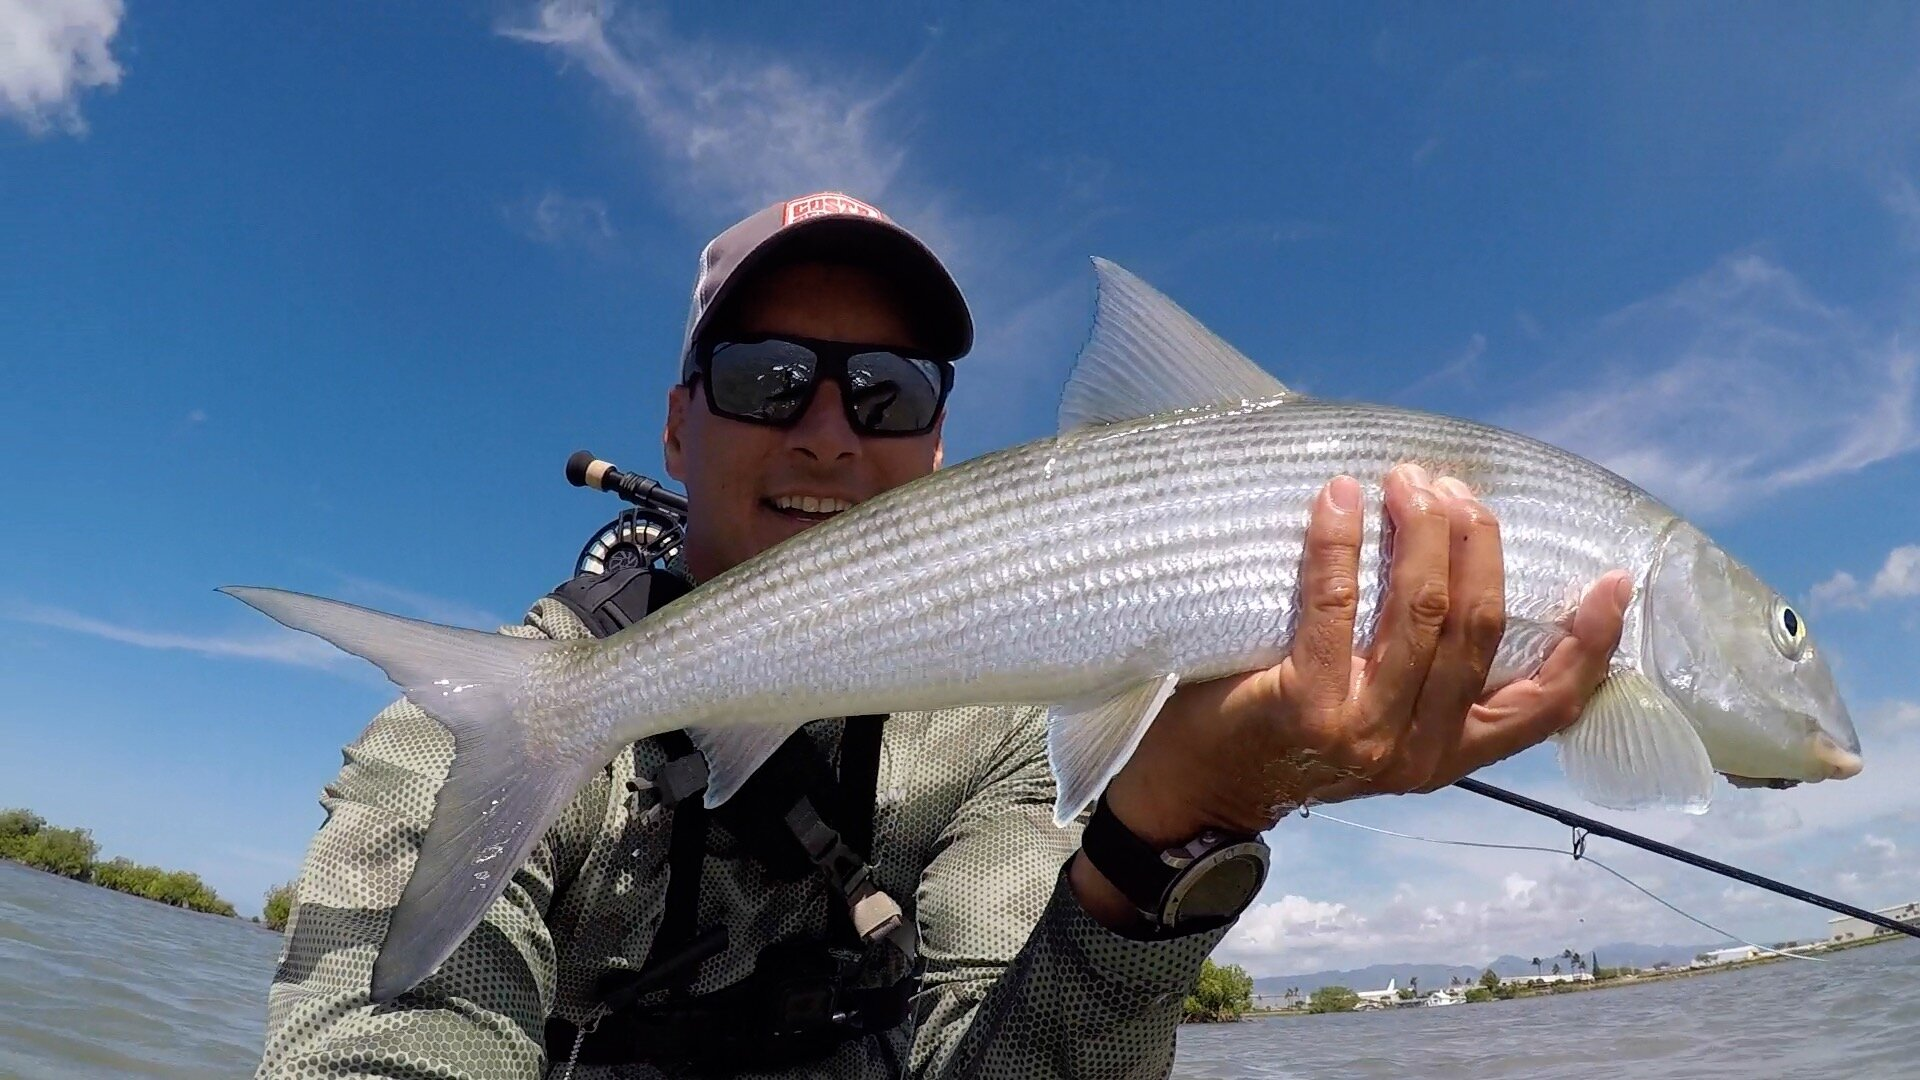 FLY FISHING CHARTERS - Half and Full Day Fly Fishing ChartersHalf Day: $500 and Full Day: $700Additional Angler:Half Day: $75 per anglerFull Day: $100 per anglerPick Up From Waikiki: $50Maximum of 3 Anglers